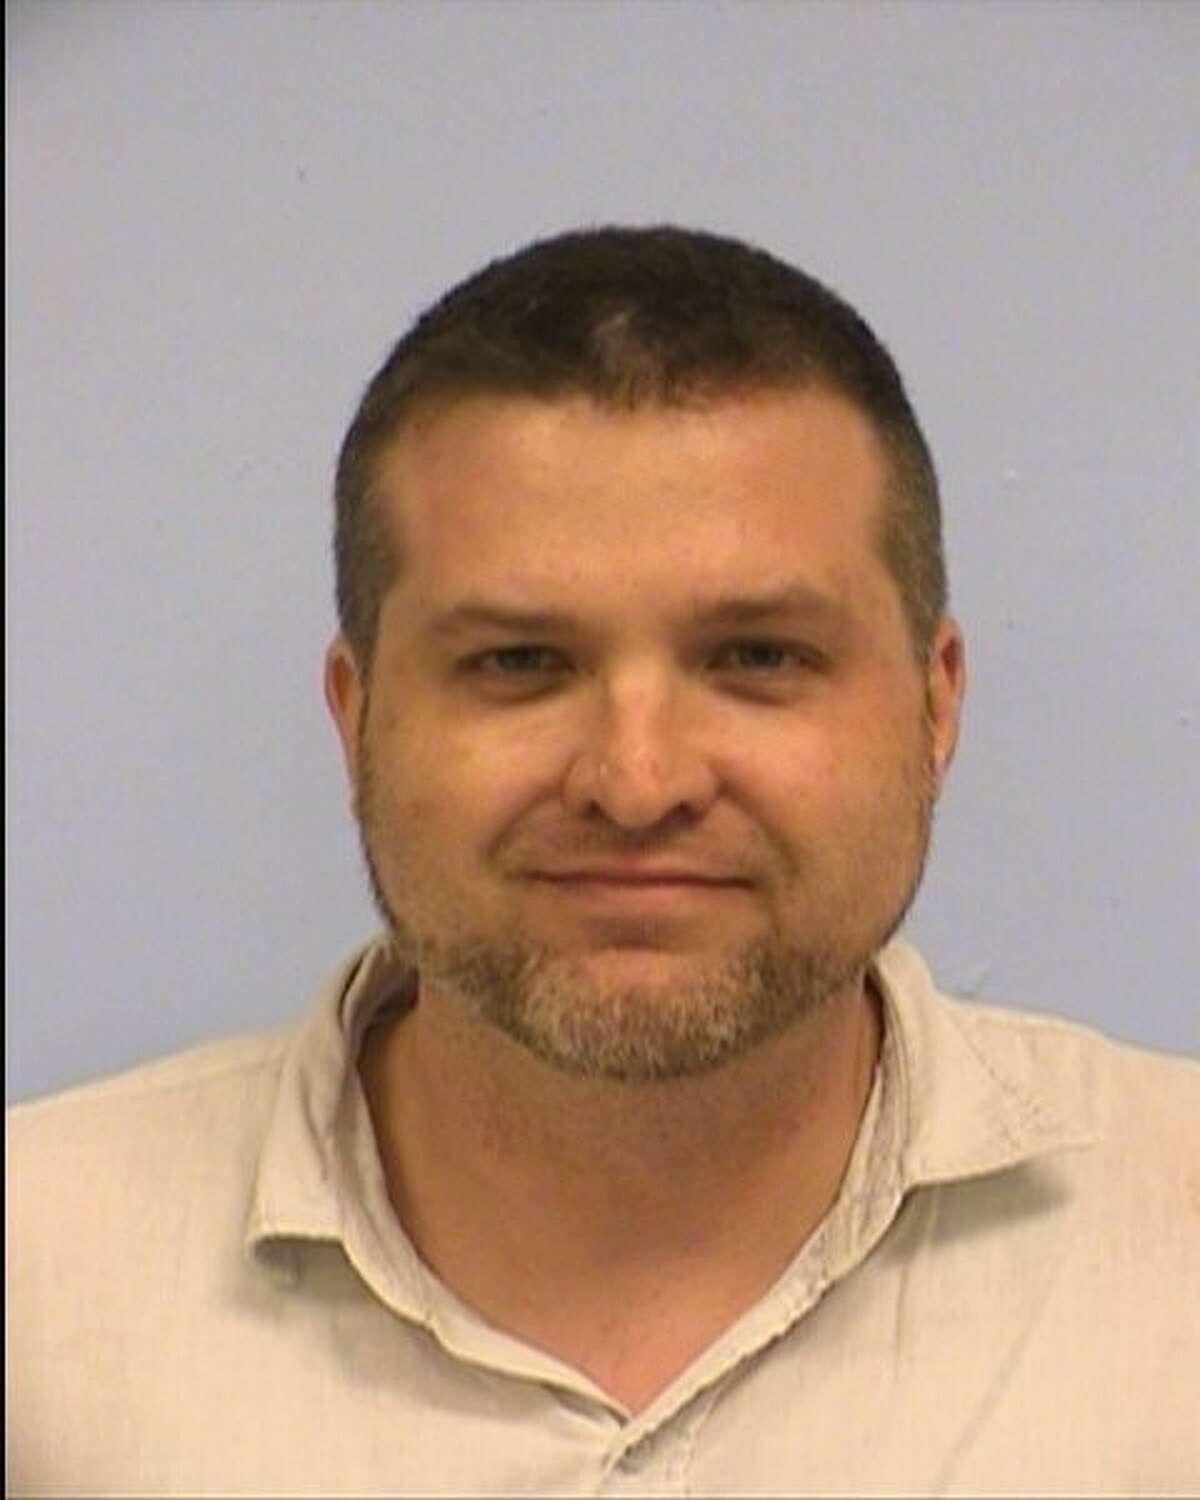 Brandon Cutro, 35, was arrested on a felony charge of invasive visual recording.